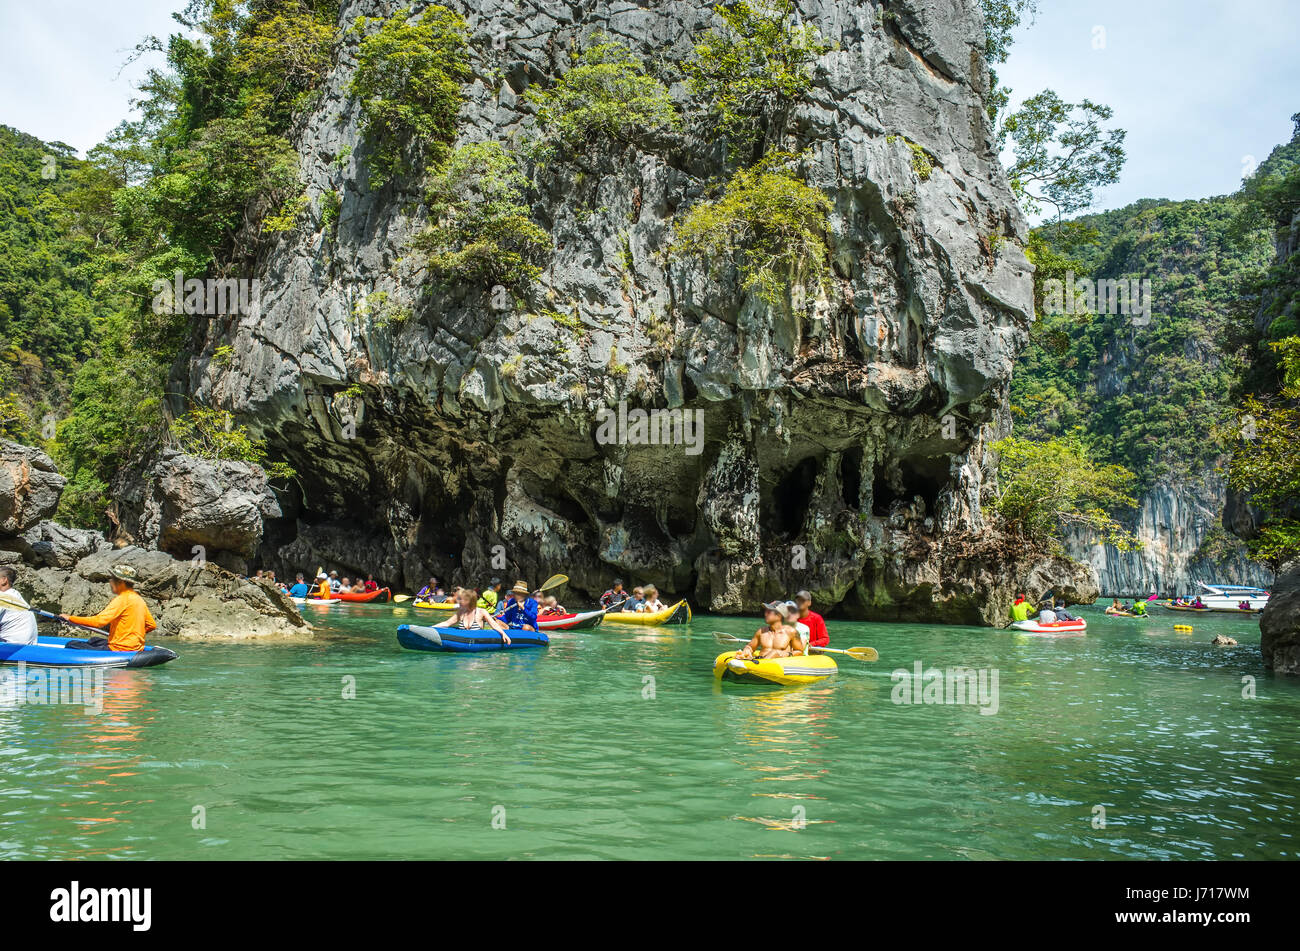 The kayaks near the caves in Phuket, Thailand. Asia - Stock Image